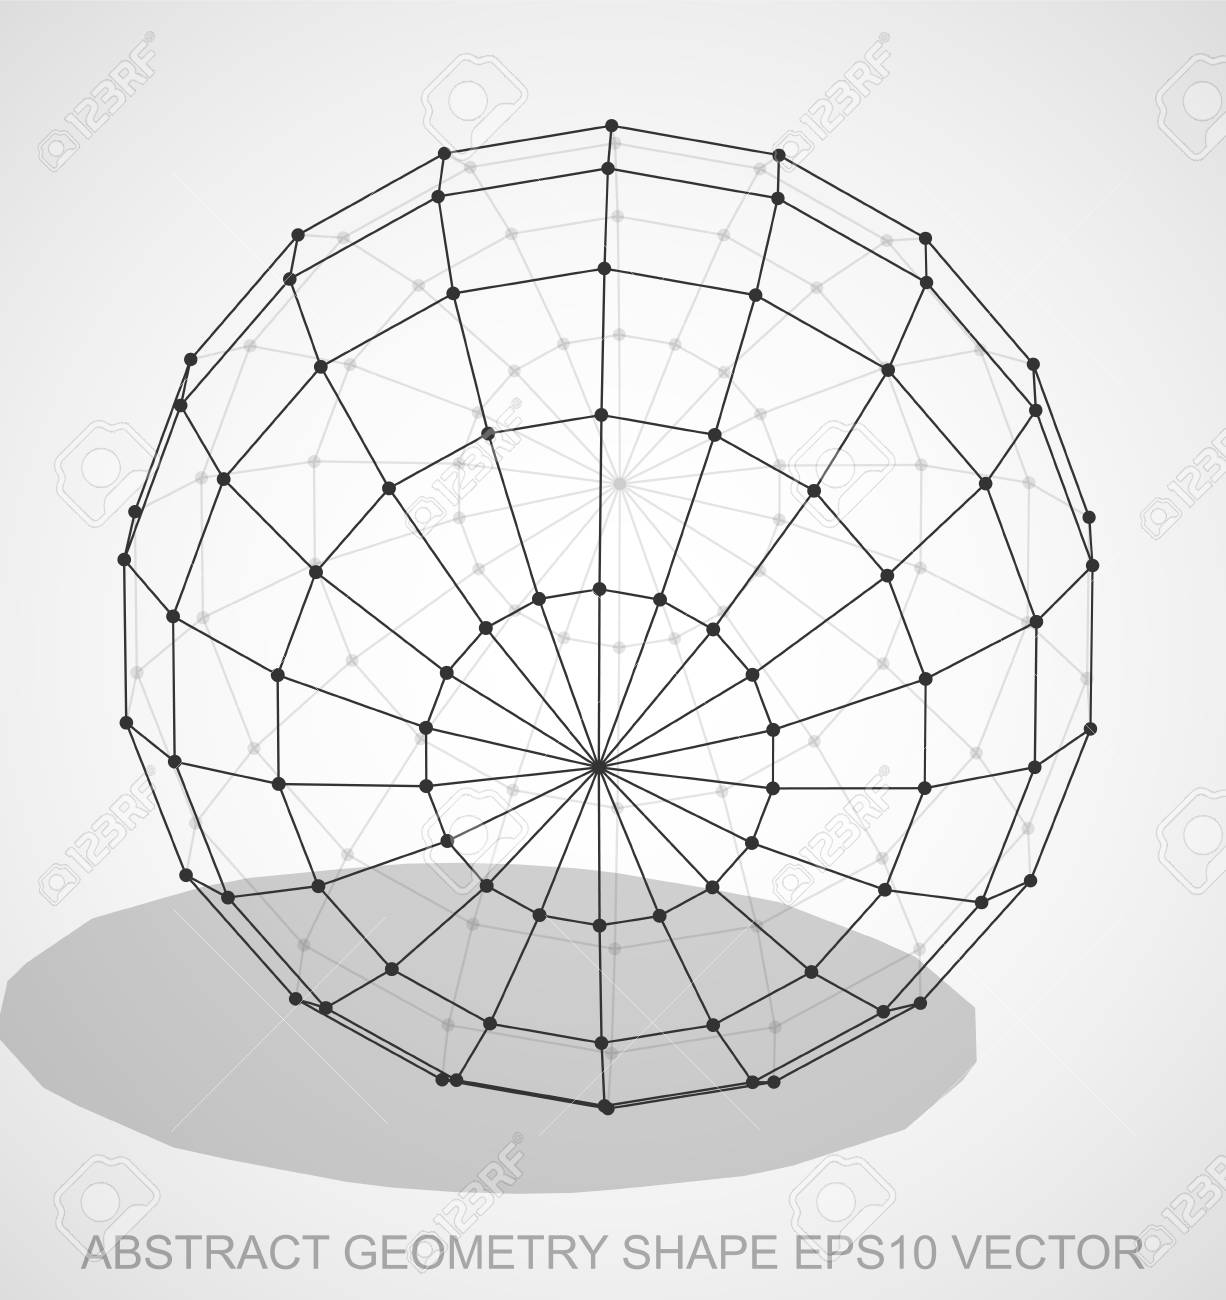 abstract geometry shape: black sketched sphere with transparent shadow   hand drawn 3d polygonal sphere